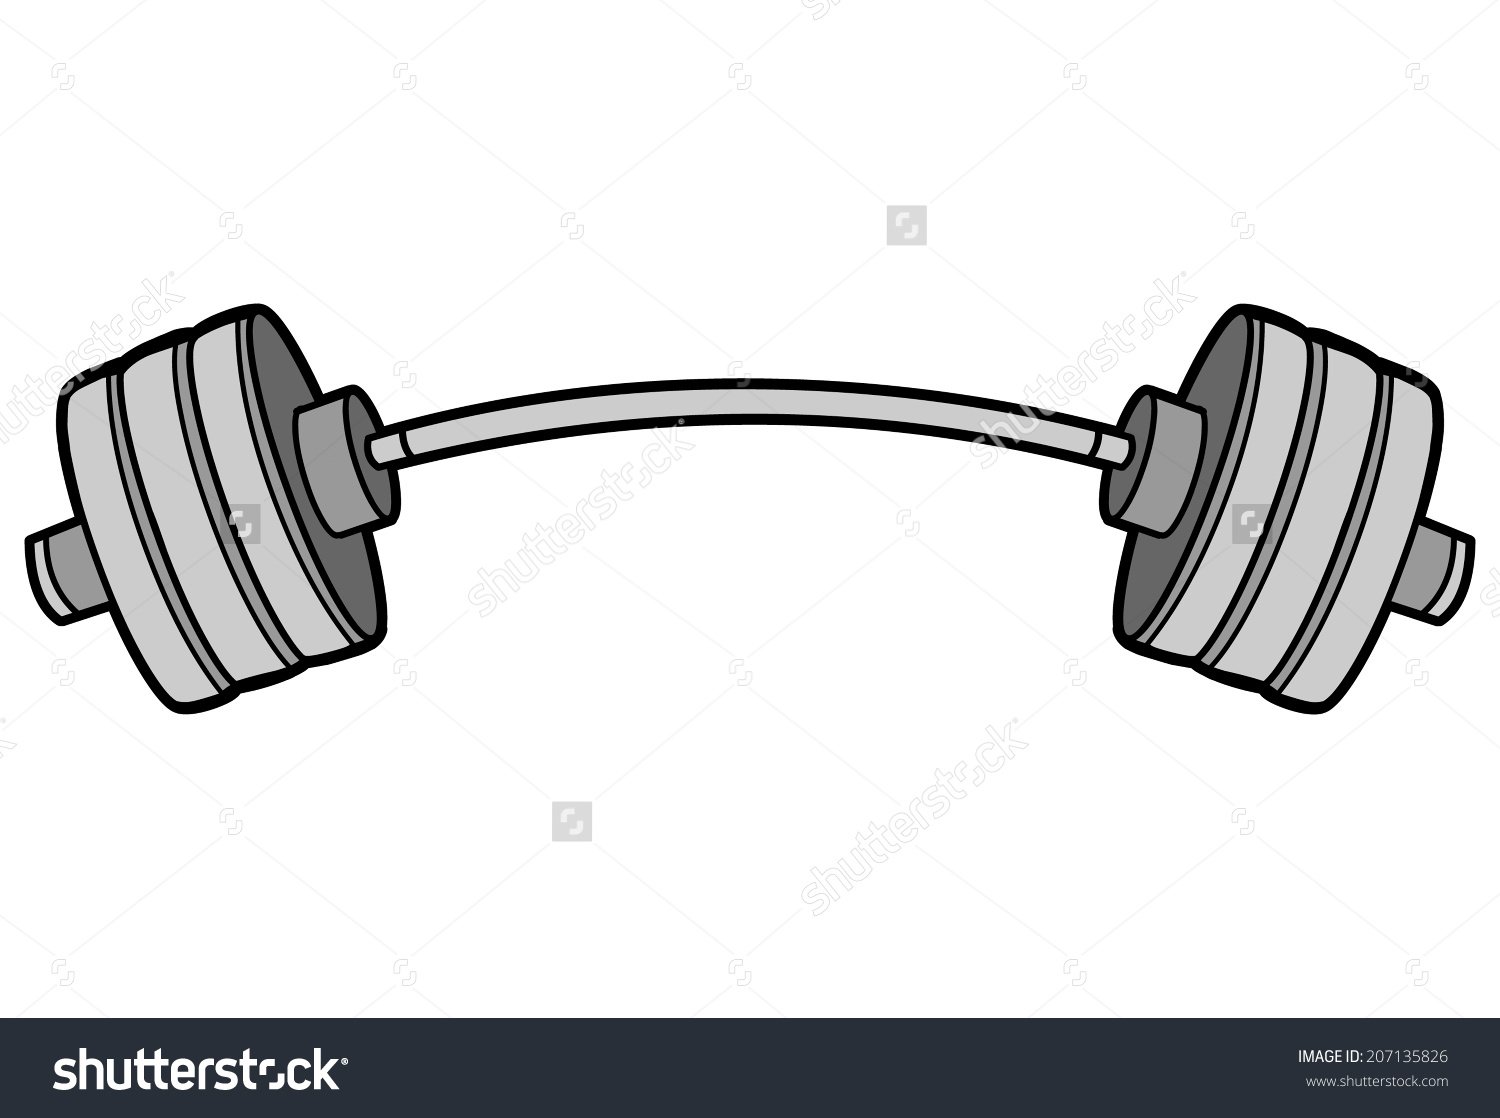 1500x1118 Outline Of Barbell Clipart Amp Outline Of Barbell Clip Art Images